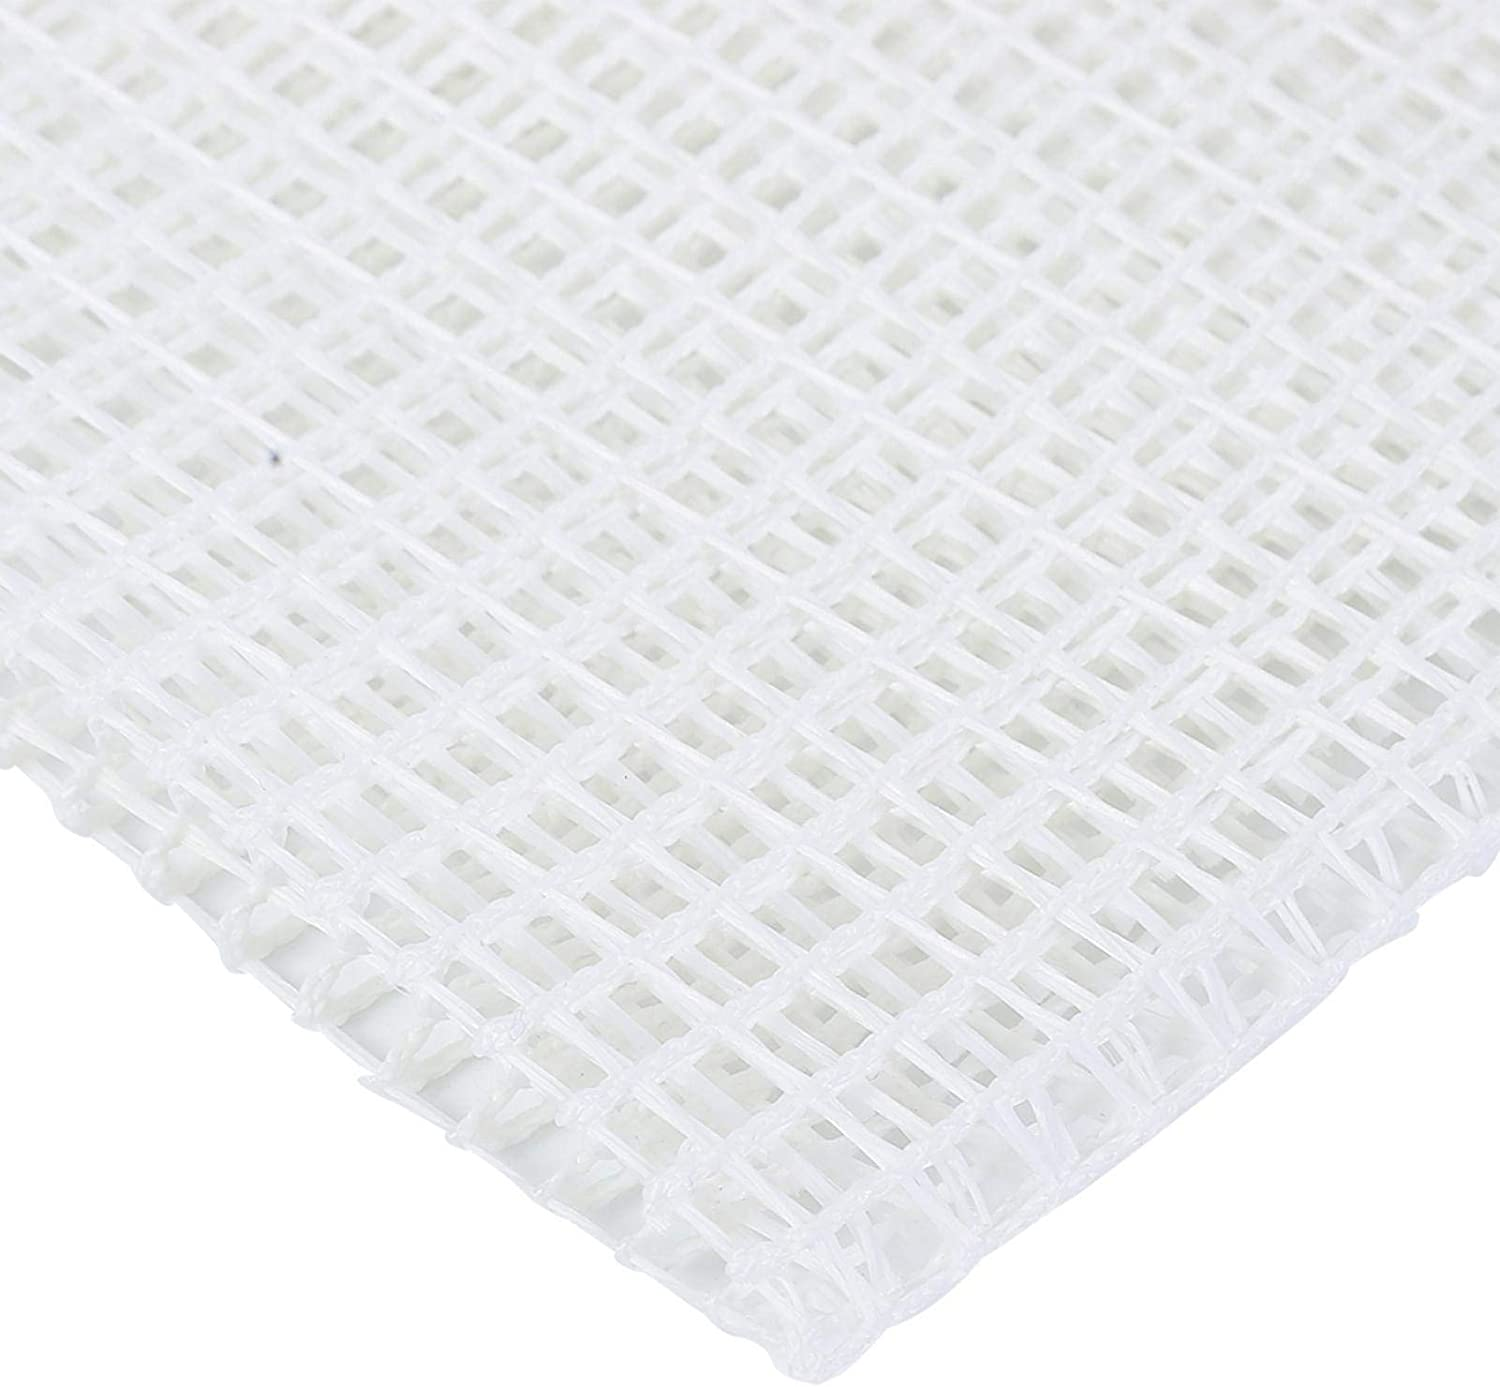 Elegant Shipenophy Mesh Cloth Carpet Tapestry Product Exquisite Crocheting Pillo